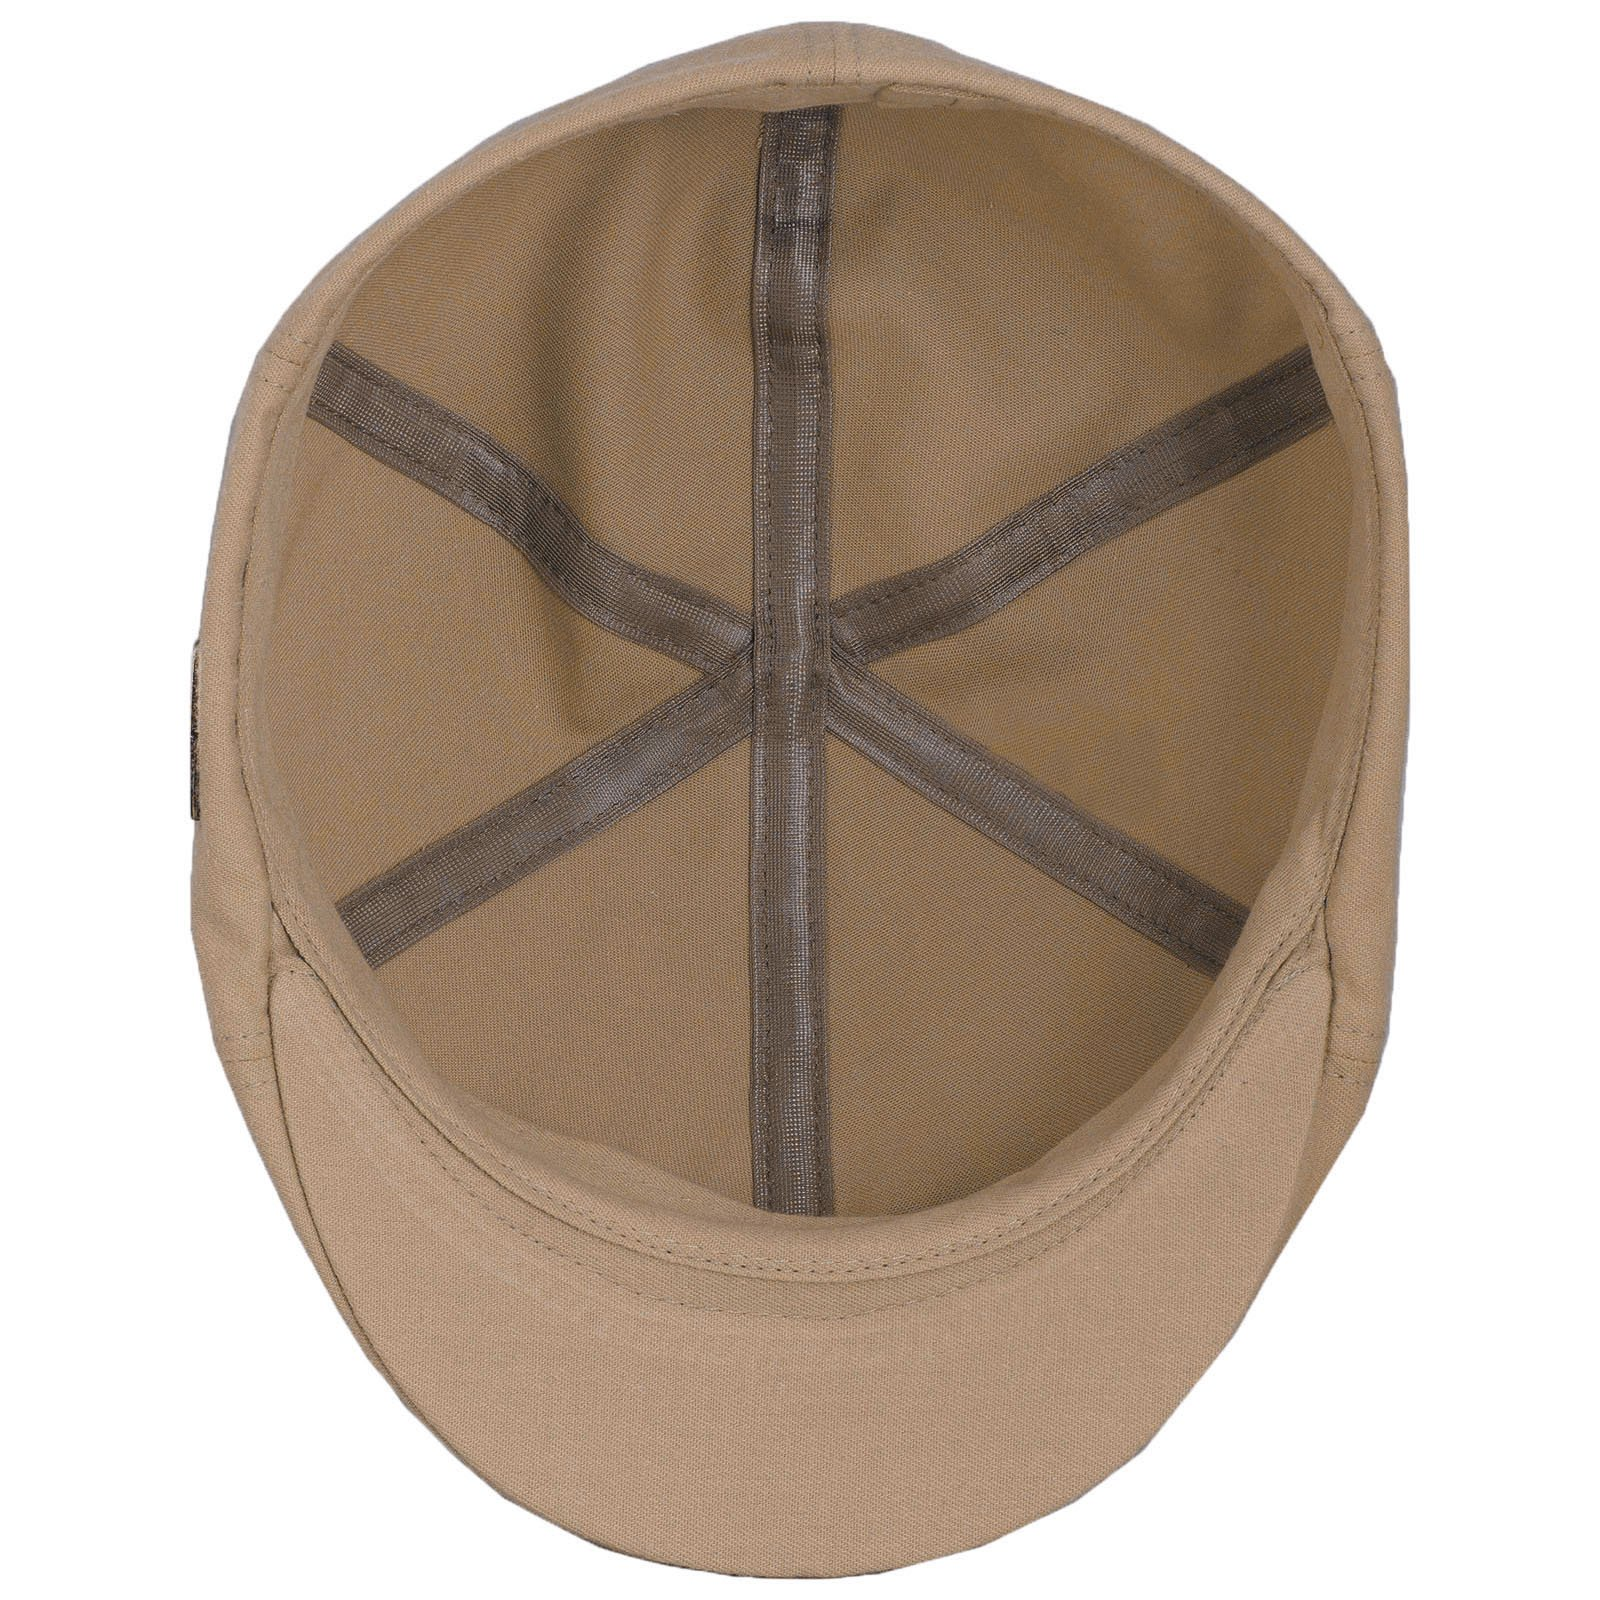 Sterkowski Light Breathable Emerizing Cotton 6 Panel Duckbill Flat Cap, Beige - 58cm = L = US 7 1/4 by Sterkowski (Image #4)